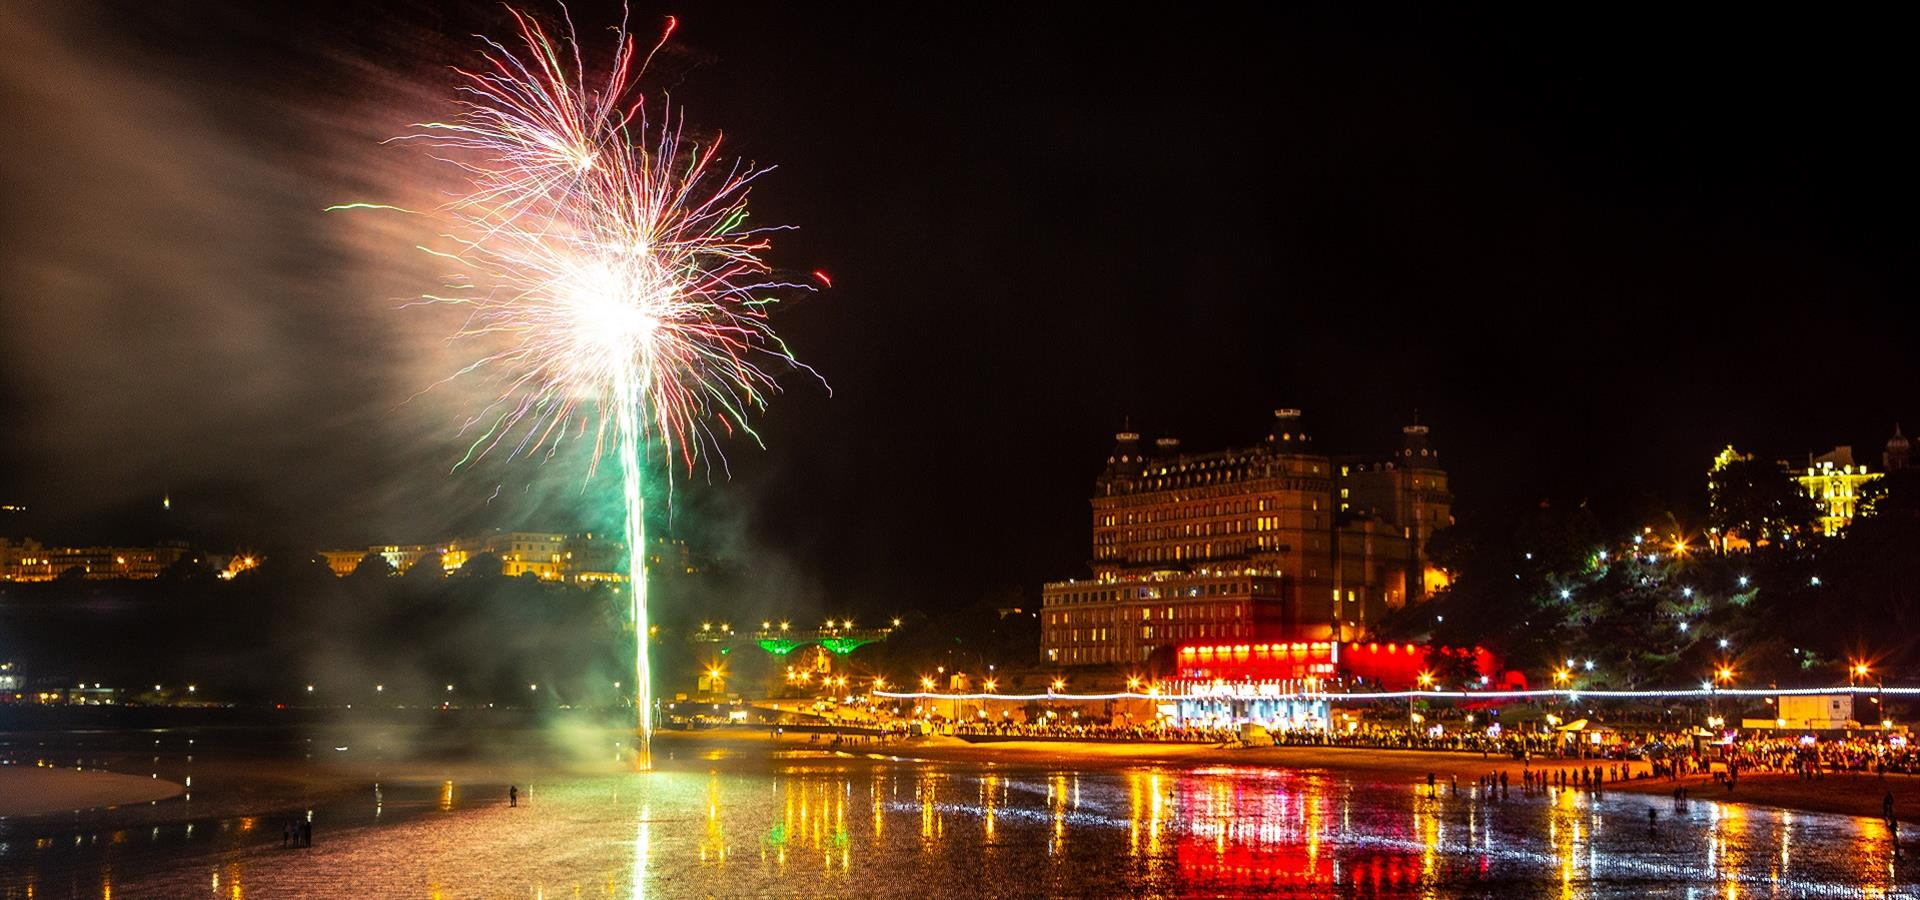 An image of Fireworks on Bonfire Night by Ravage Productions